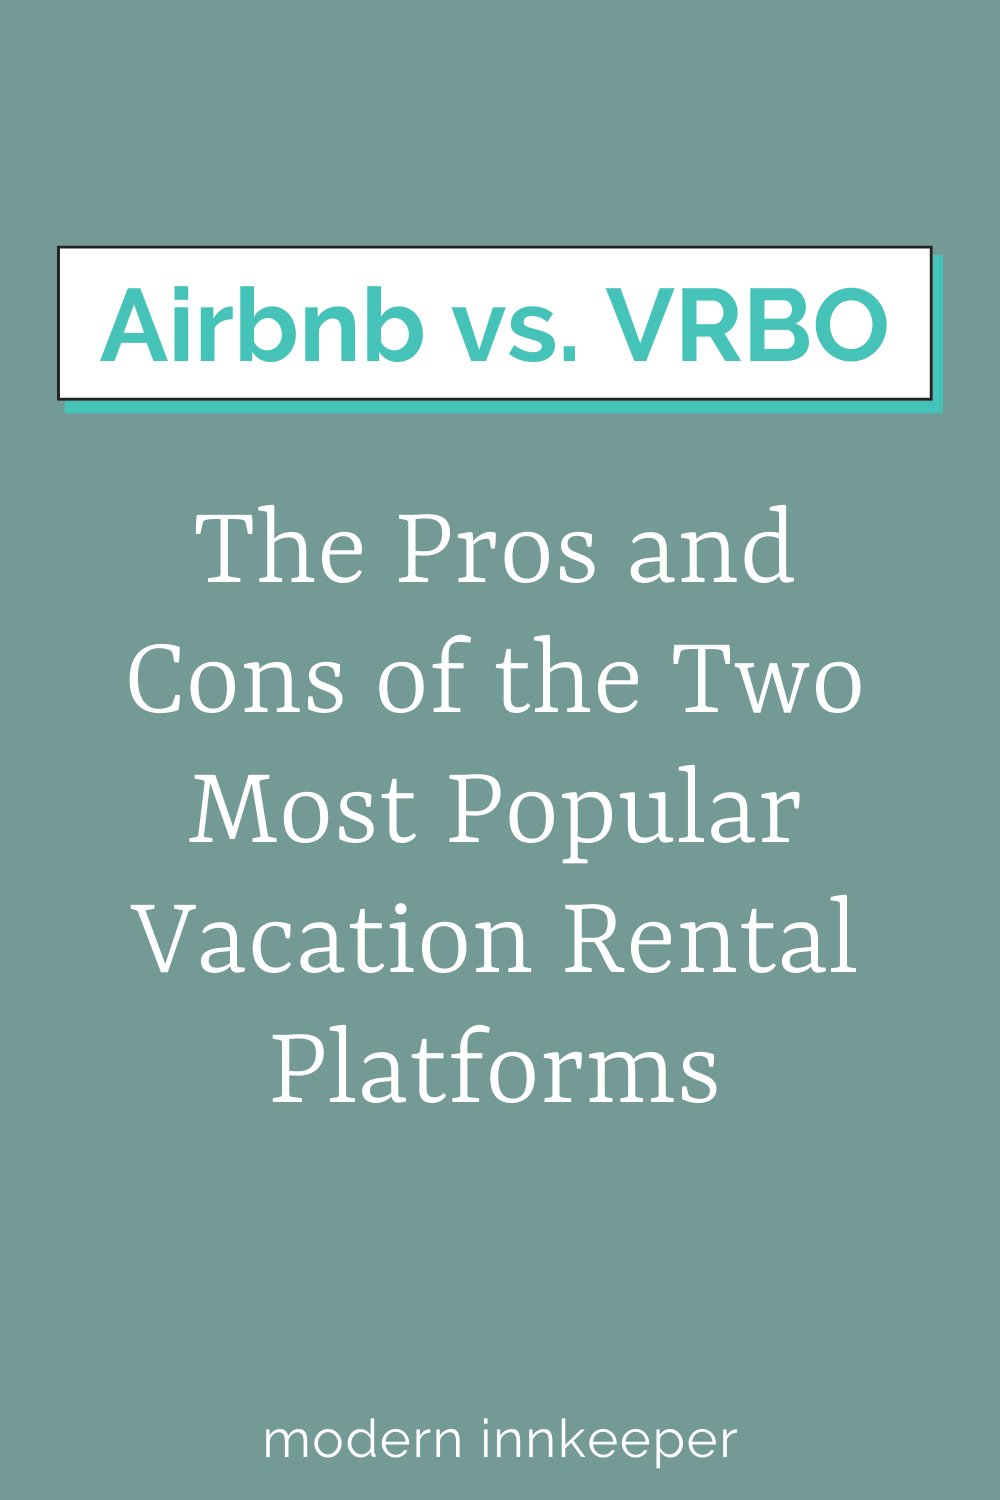 Evaluating The Two Most Popular Vacation Rental Platforms Airbnb Vs Vrbo Modern Innkeeper Vacation Rental Toiletries Wholesale Hotel Amenities In 2021 Popular Vacations Vacation Rental Airbnb Advice